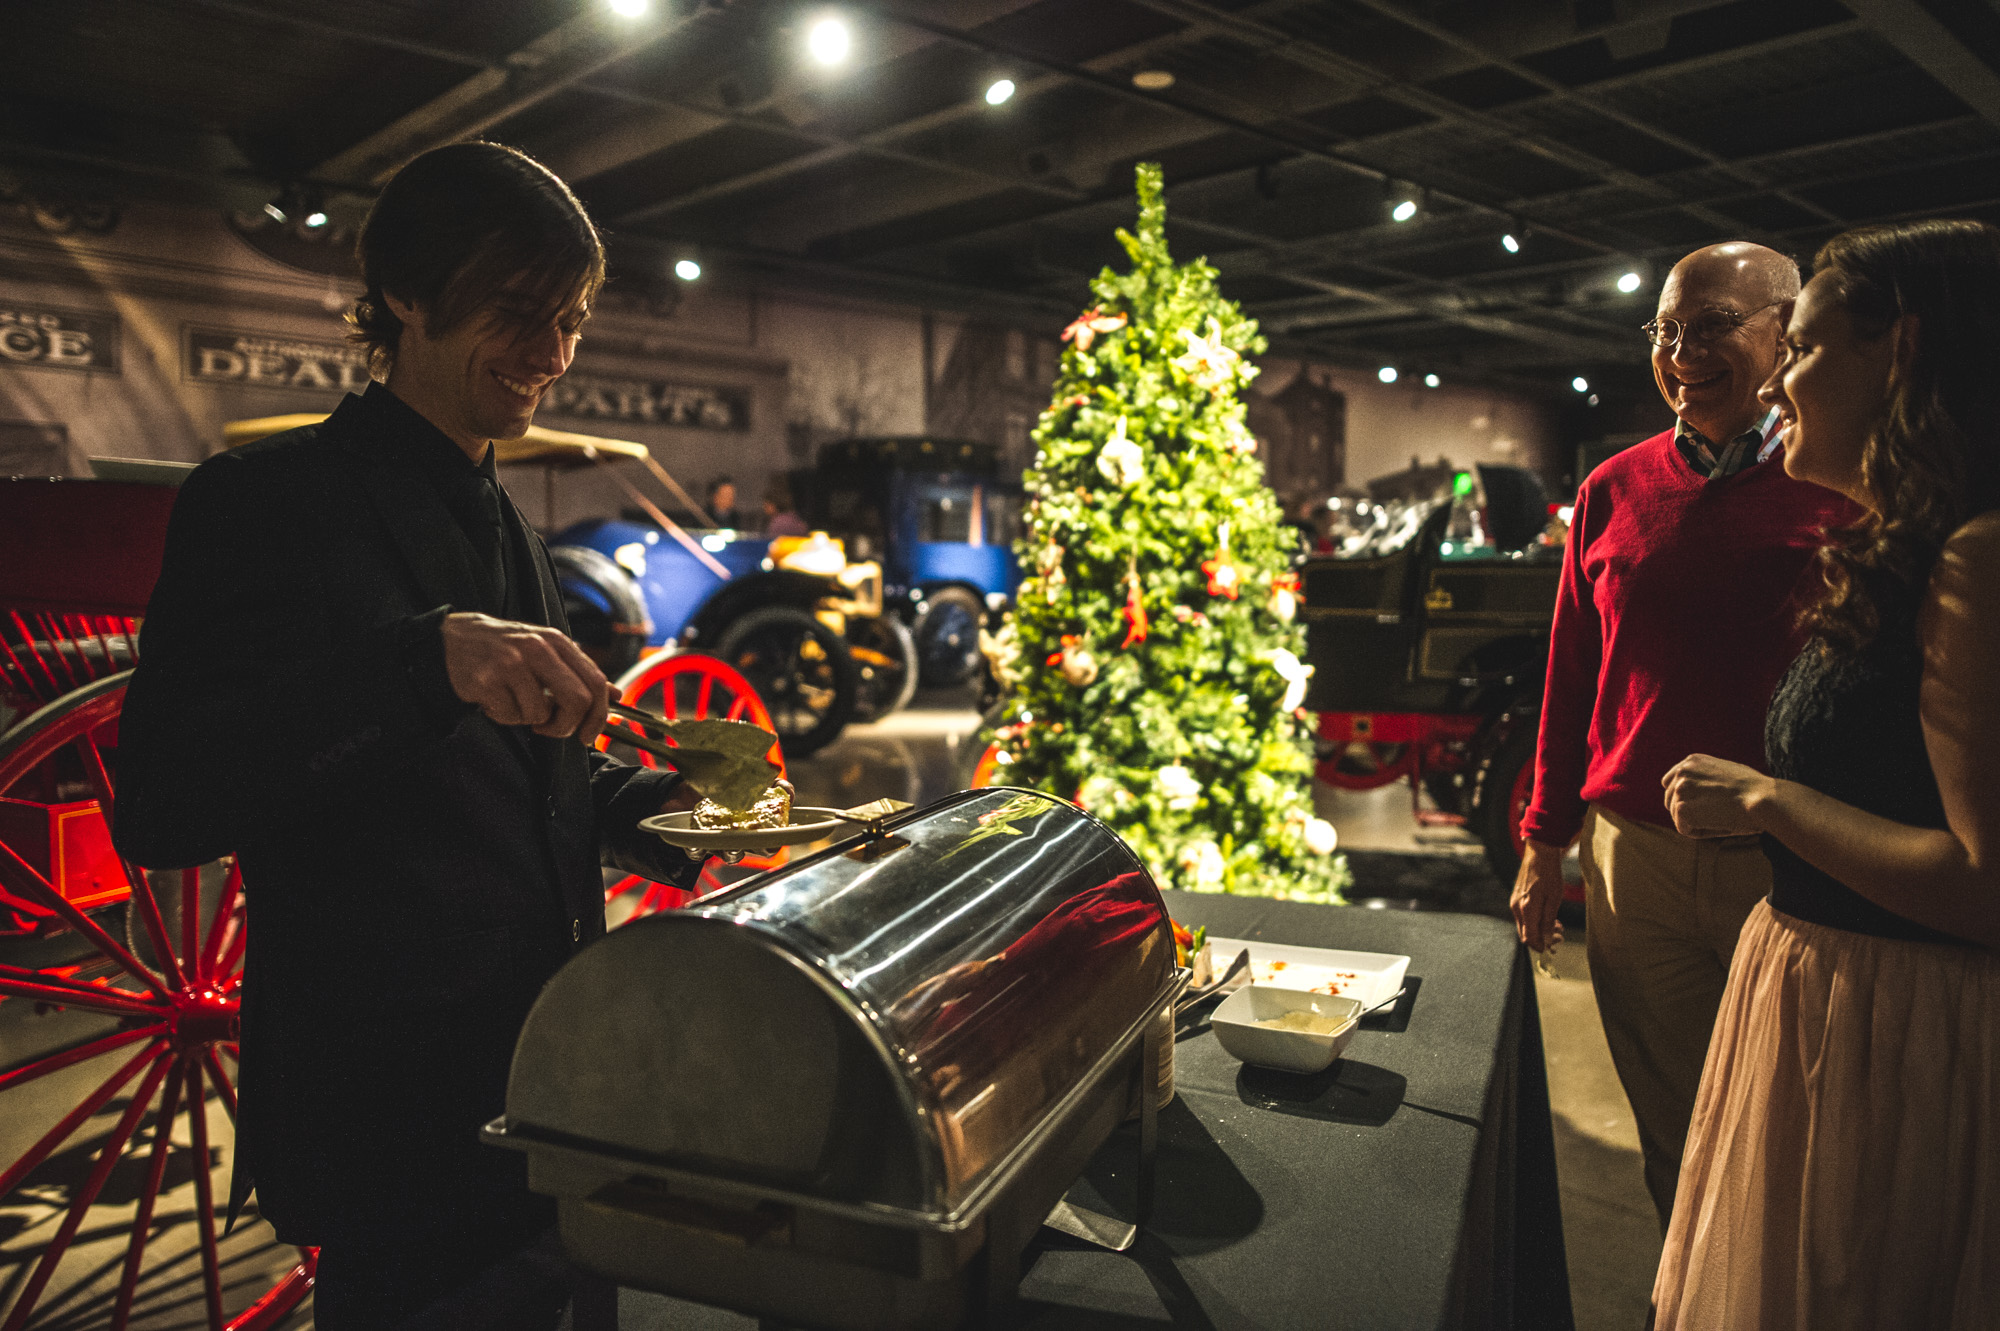 A man serves food to guests at the Autism Society Winter Fundraiser at the Vehicle Vault in Parker, Colorado. In the background are several vintage vehicles and a Christmas tree. Photo is in color.